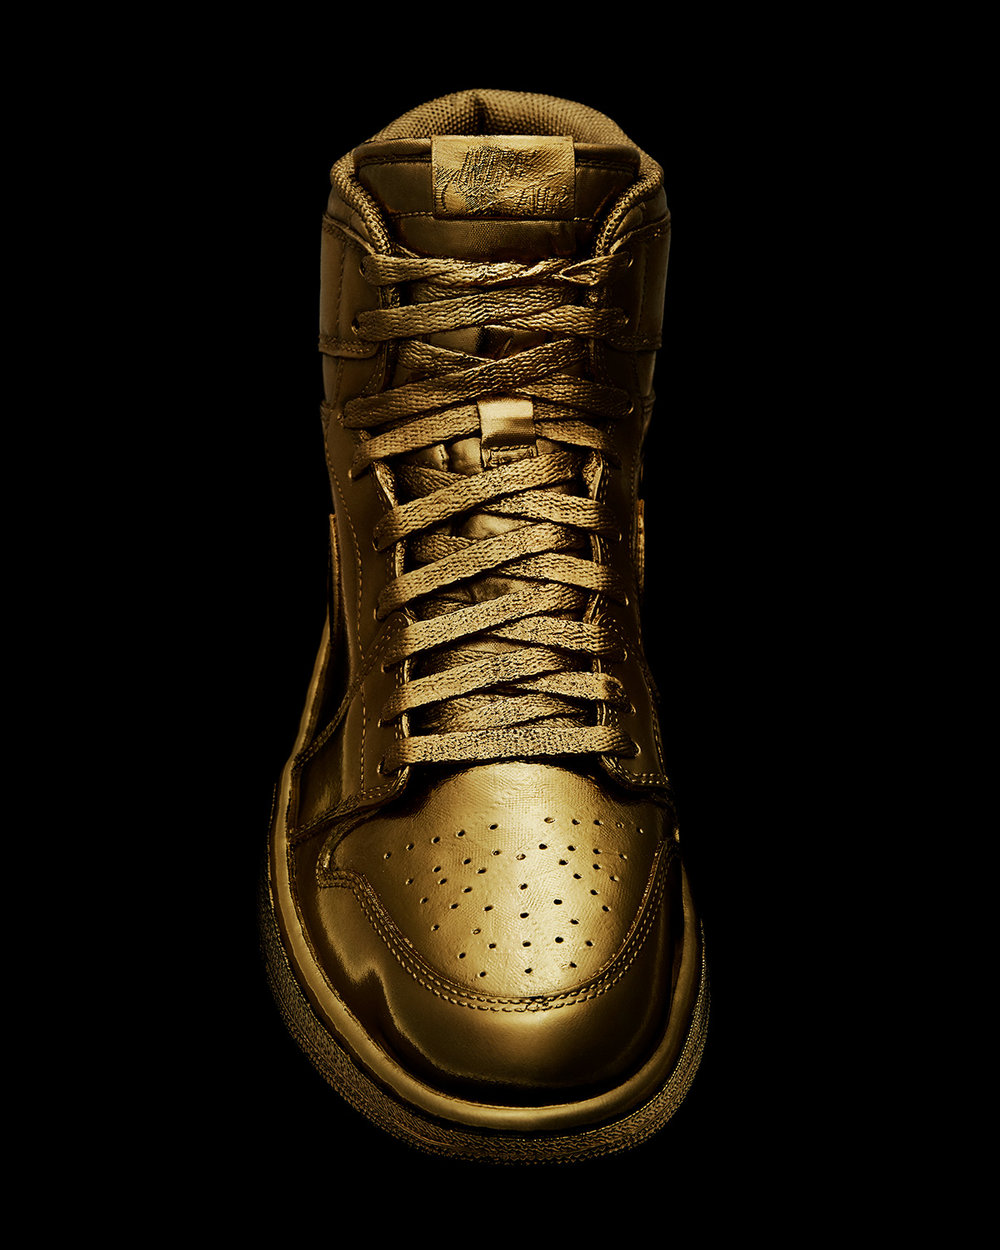 tom-medvedich-still-life-matt-senna-gold-jordans-top.jpg